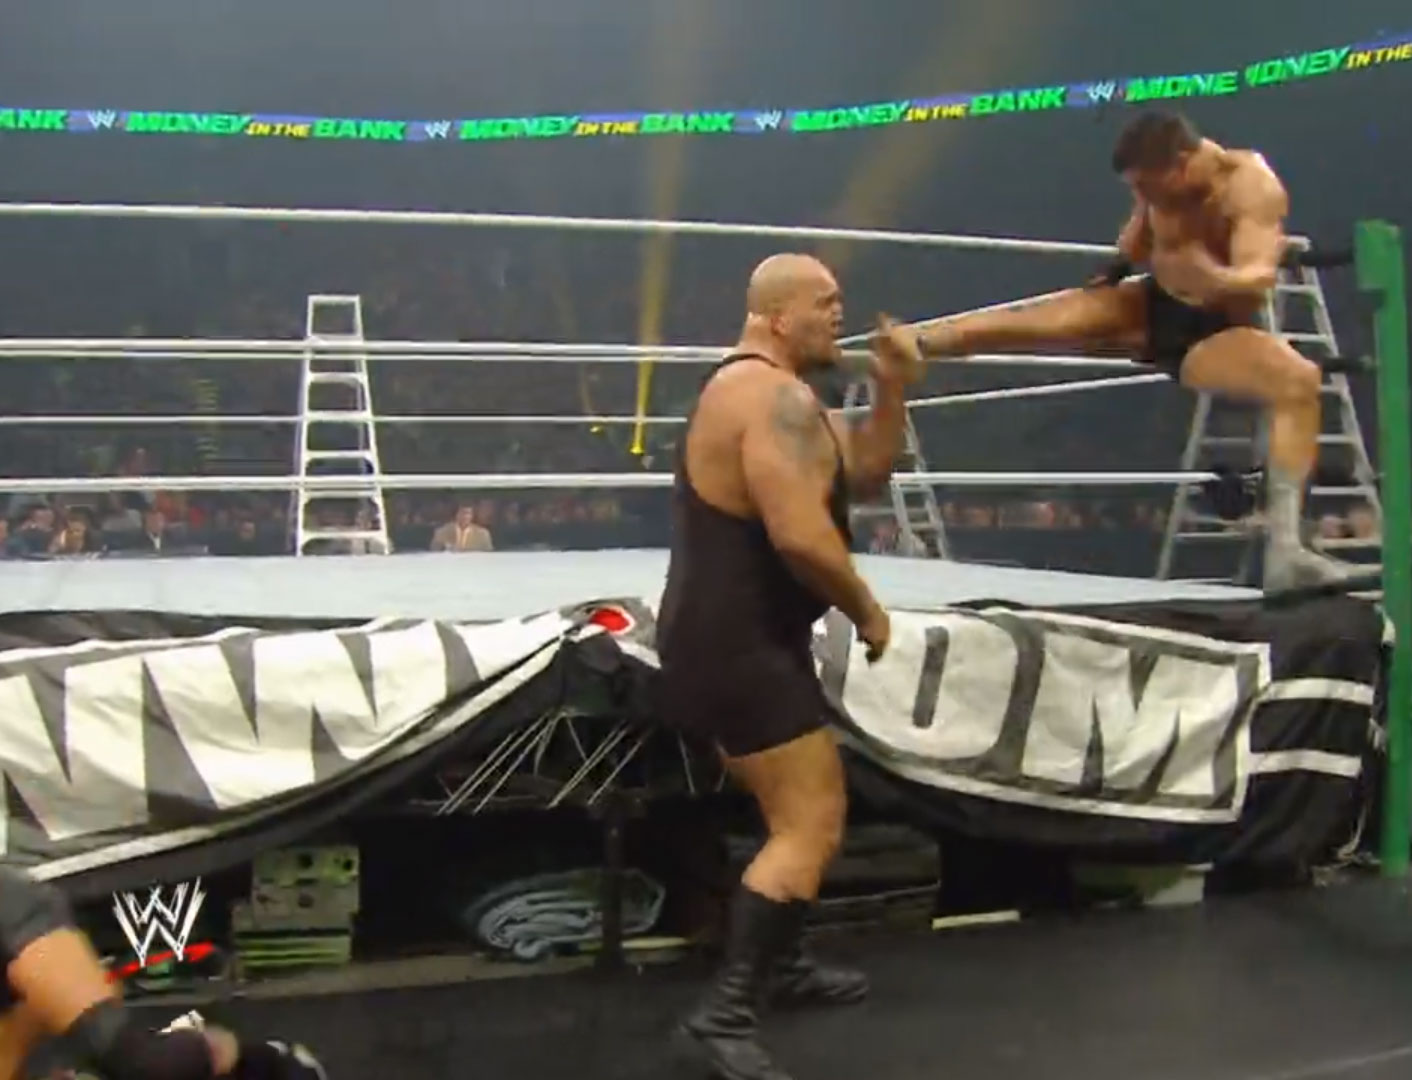 Smackdown Money In The Bank Match WWE Money In The Bank 2010 Jul 18th 2010